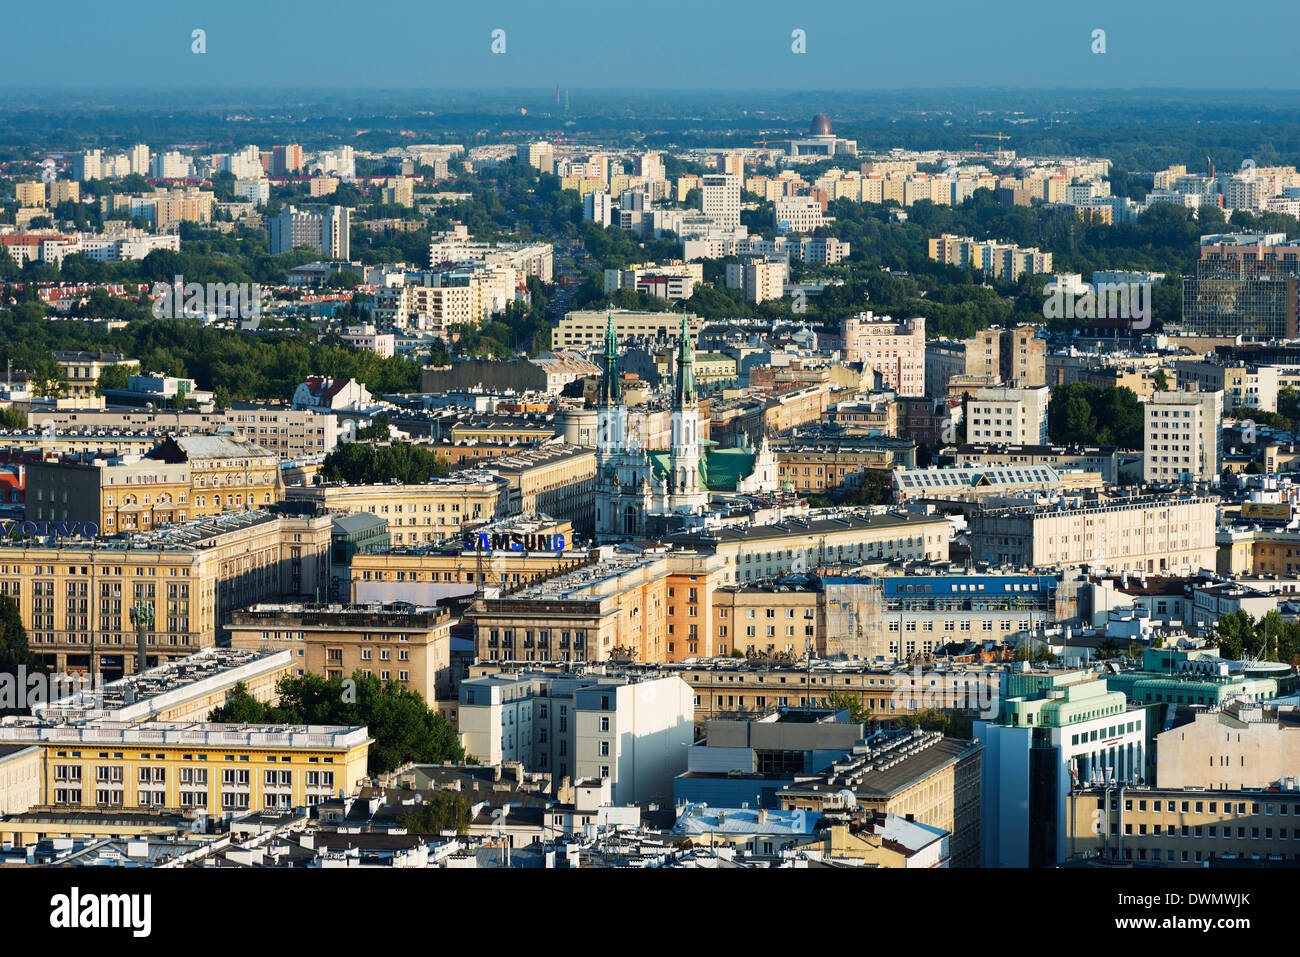 City view from Palace of Culture and Science, Warsaw, Poland, Europe - Stock Image